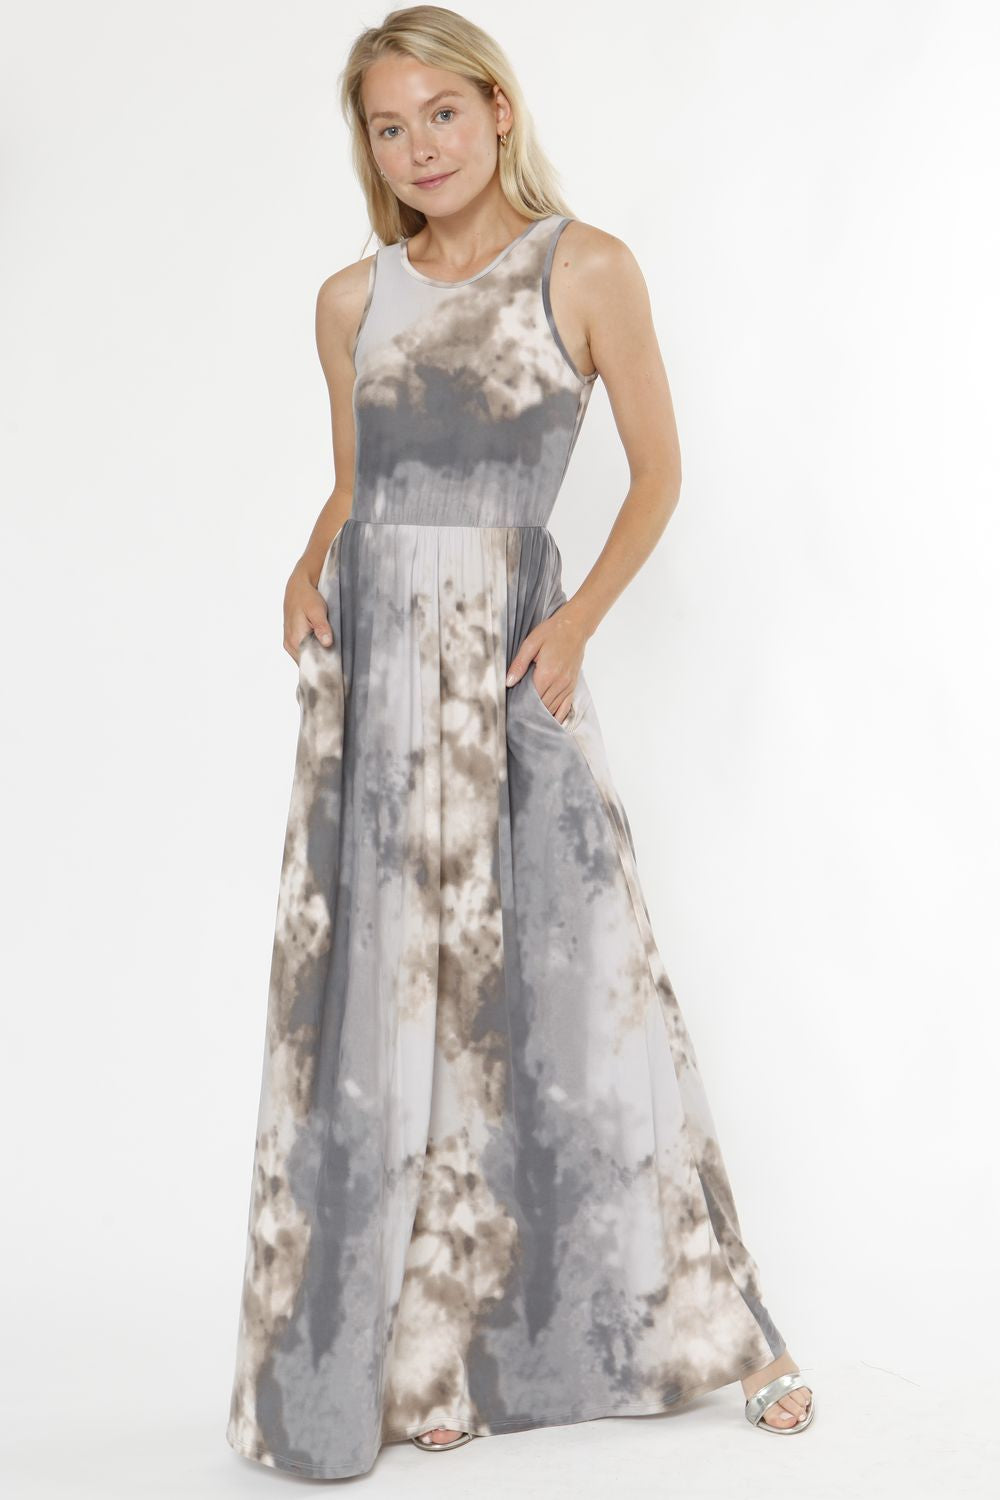 Ash Grey Tie Dye Sleeveless Maxi Dress_Plus